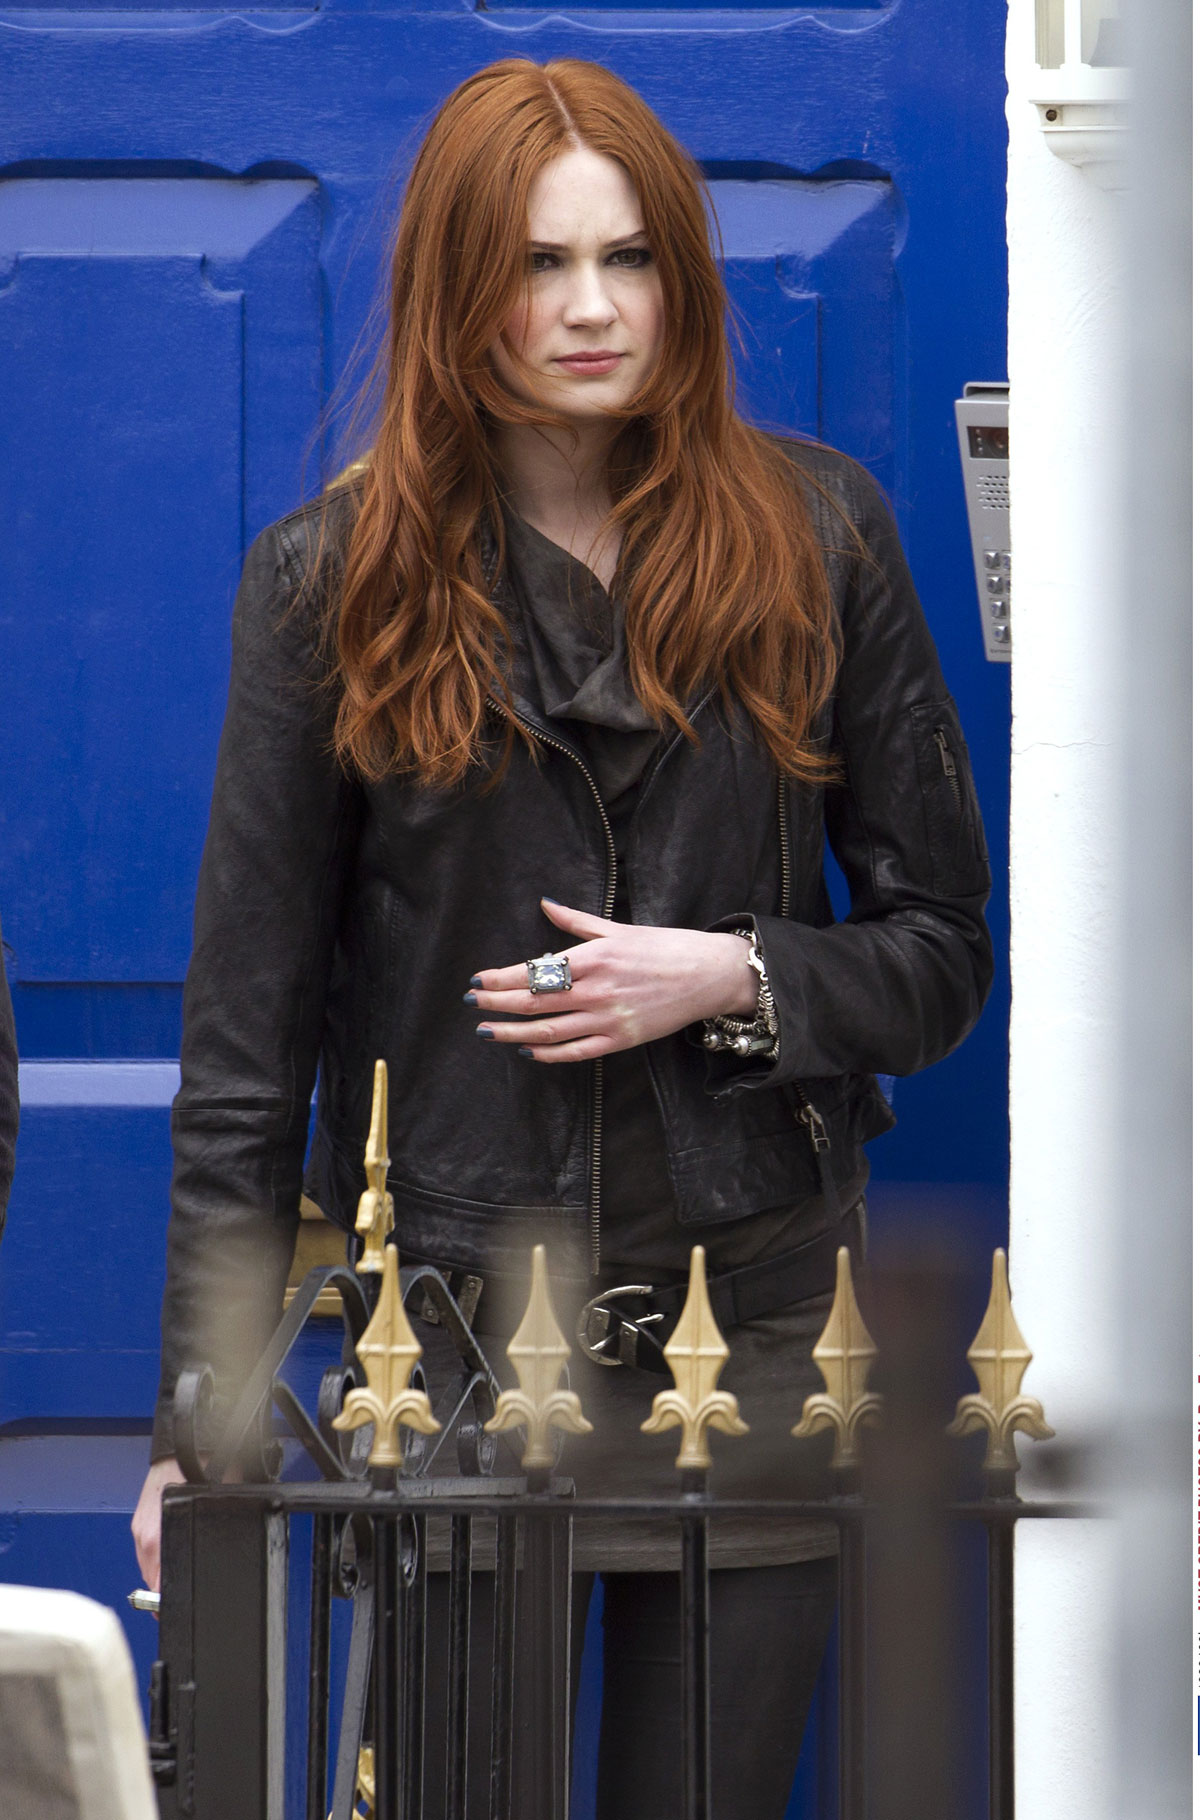 KAREN GILLAN at the Set of Doctor Who in Cardiff - HawtCelebs